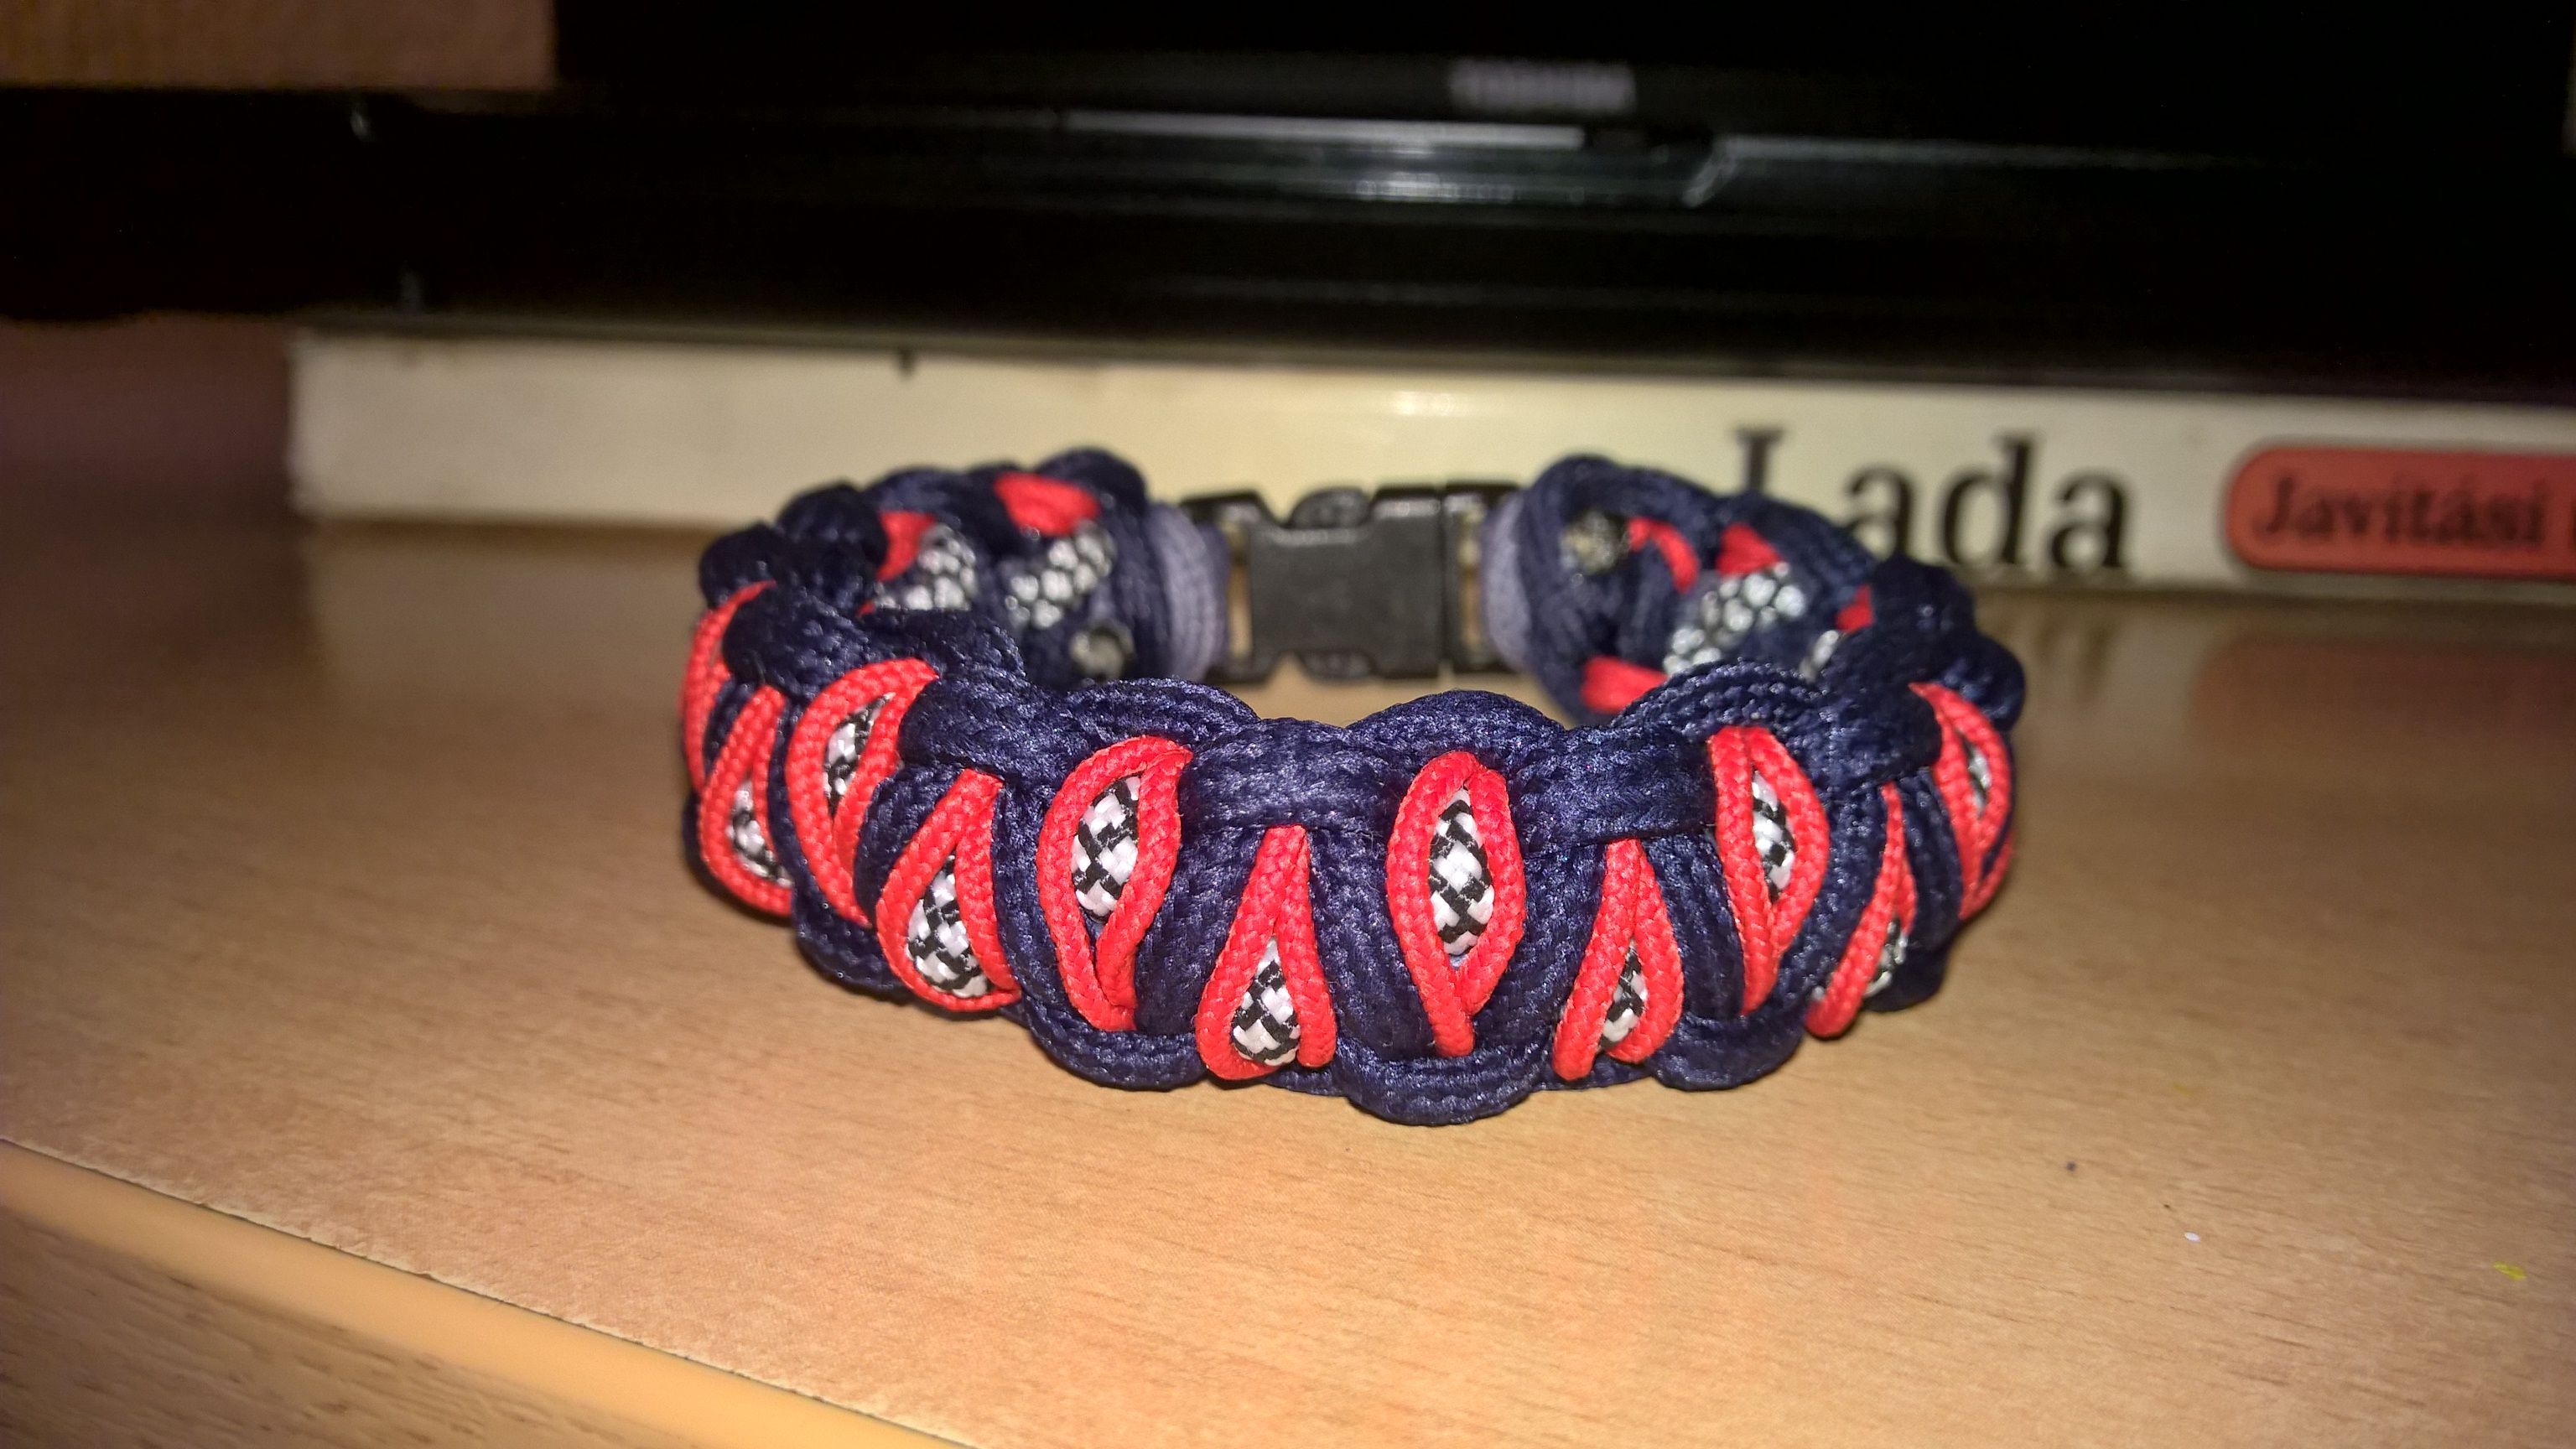 edition paracord items line medallion eagle bracelets microcord bracelet survival red fire enlarge arm to thin click